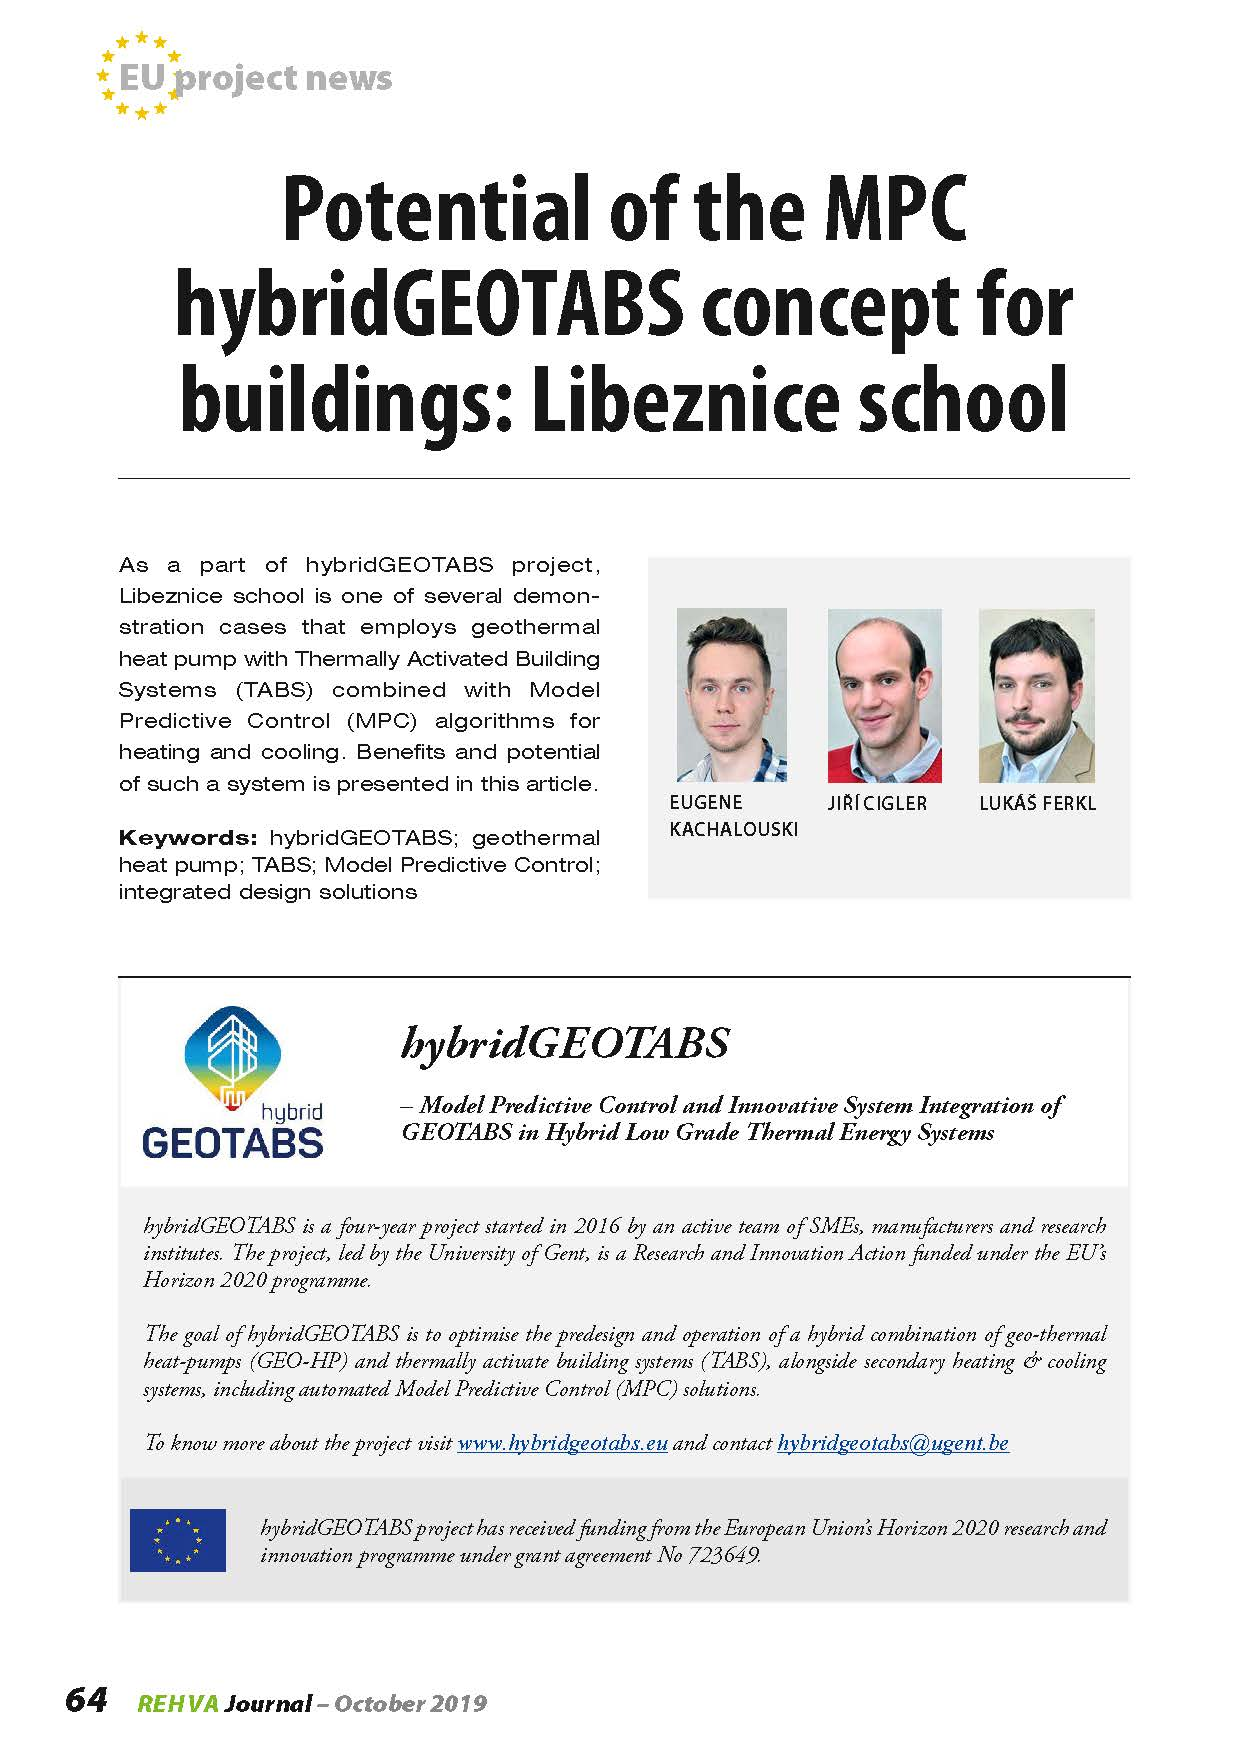 Potential of the MPC hybridGEOTABS concept for buildings